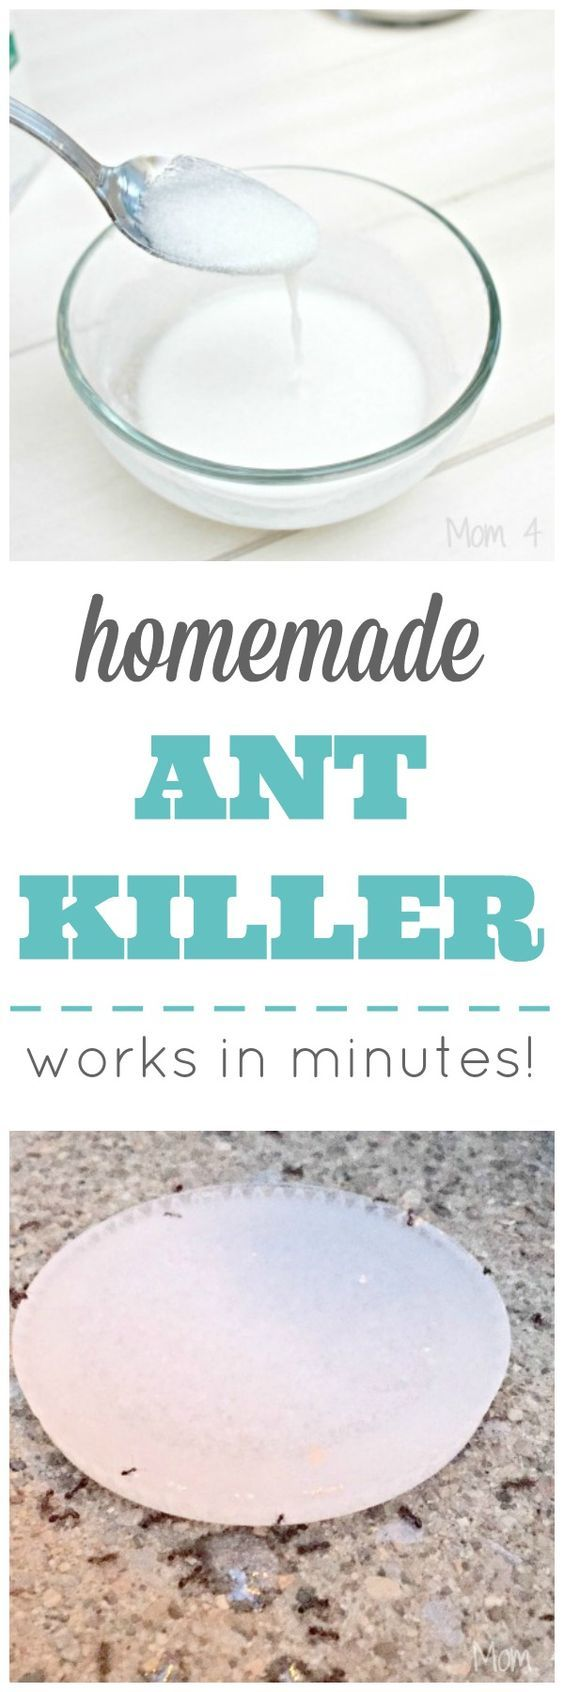 Poison Ants DIY | Recipe | Ant, Homemade and Natural